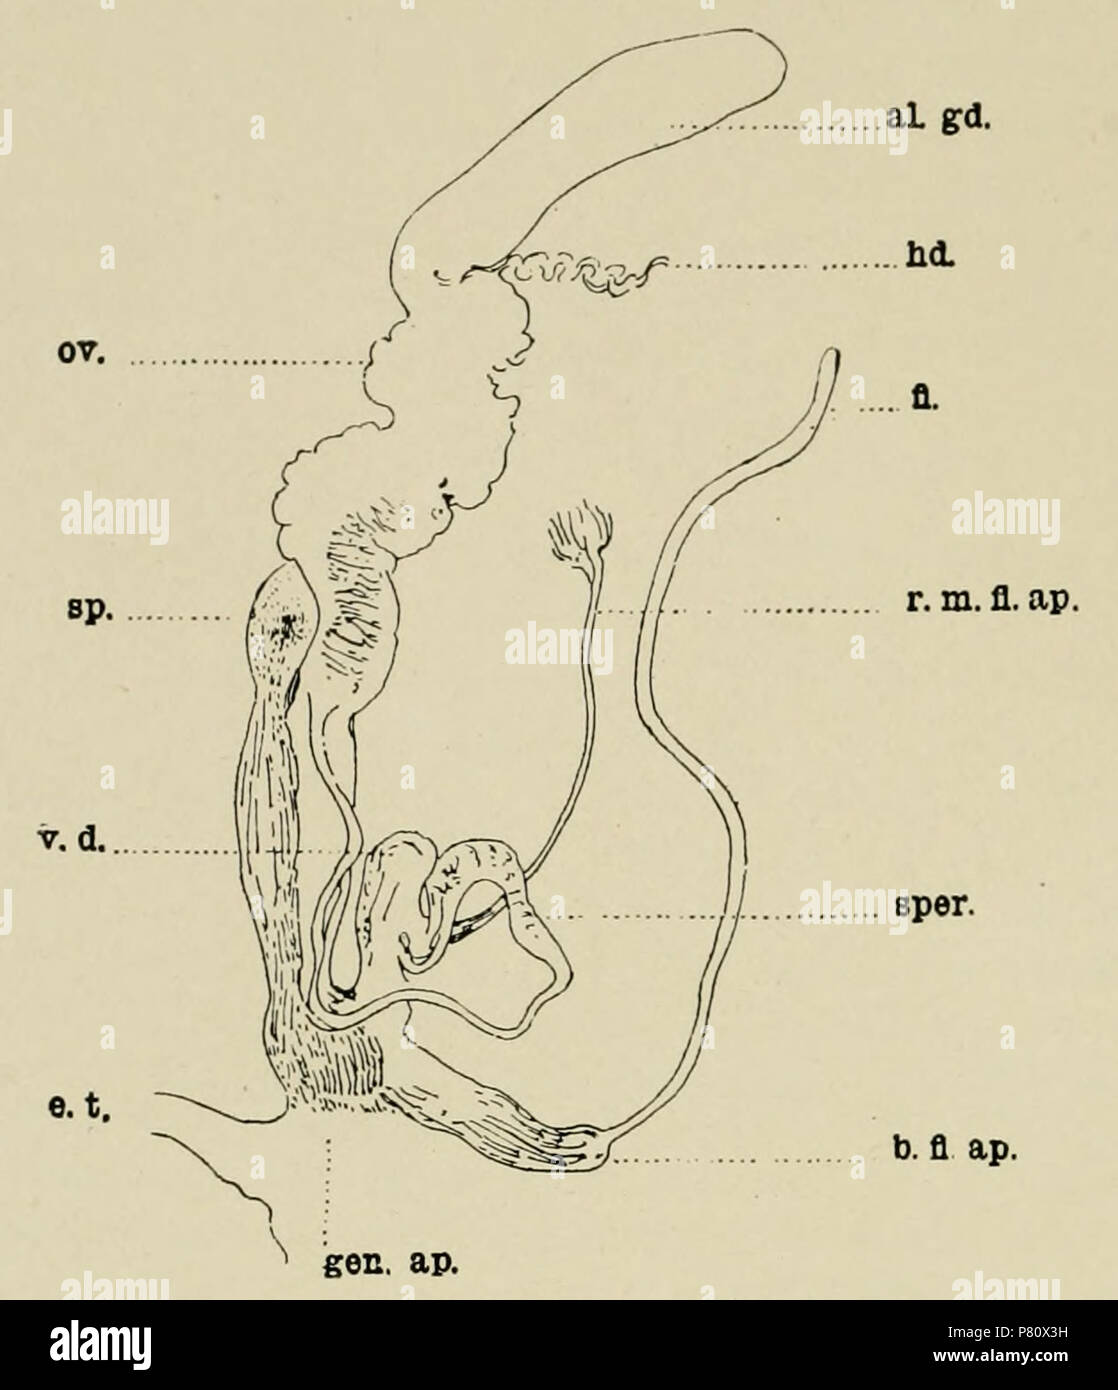 . English: Genitalia of Buliminus (Achatinelloides) socotorensis . English: An illustration of the genitalia of Buliminus (Achatinelloides) socotorensis, from The Natural History of Sokotra and Abd-el-Kuri. The key reads: hd., hermaphrodite duct; al.gd., albumen gland; ov., oviduct; sp., spermatheca; fl., flagellum; v.d., vas deferens; sper., spermatophore; b. fl. ap., base of flagellate appendix; r. m. fl. ap., retractor msucle of flagellate appendix; gen. ap., generative aperature; e. t., eye tentacle. 1903 170 Genitalia of Buliminus (Achatinelloides) socotorensis - Stock Image